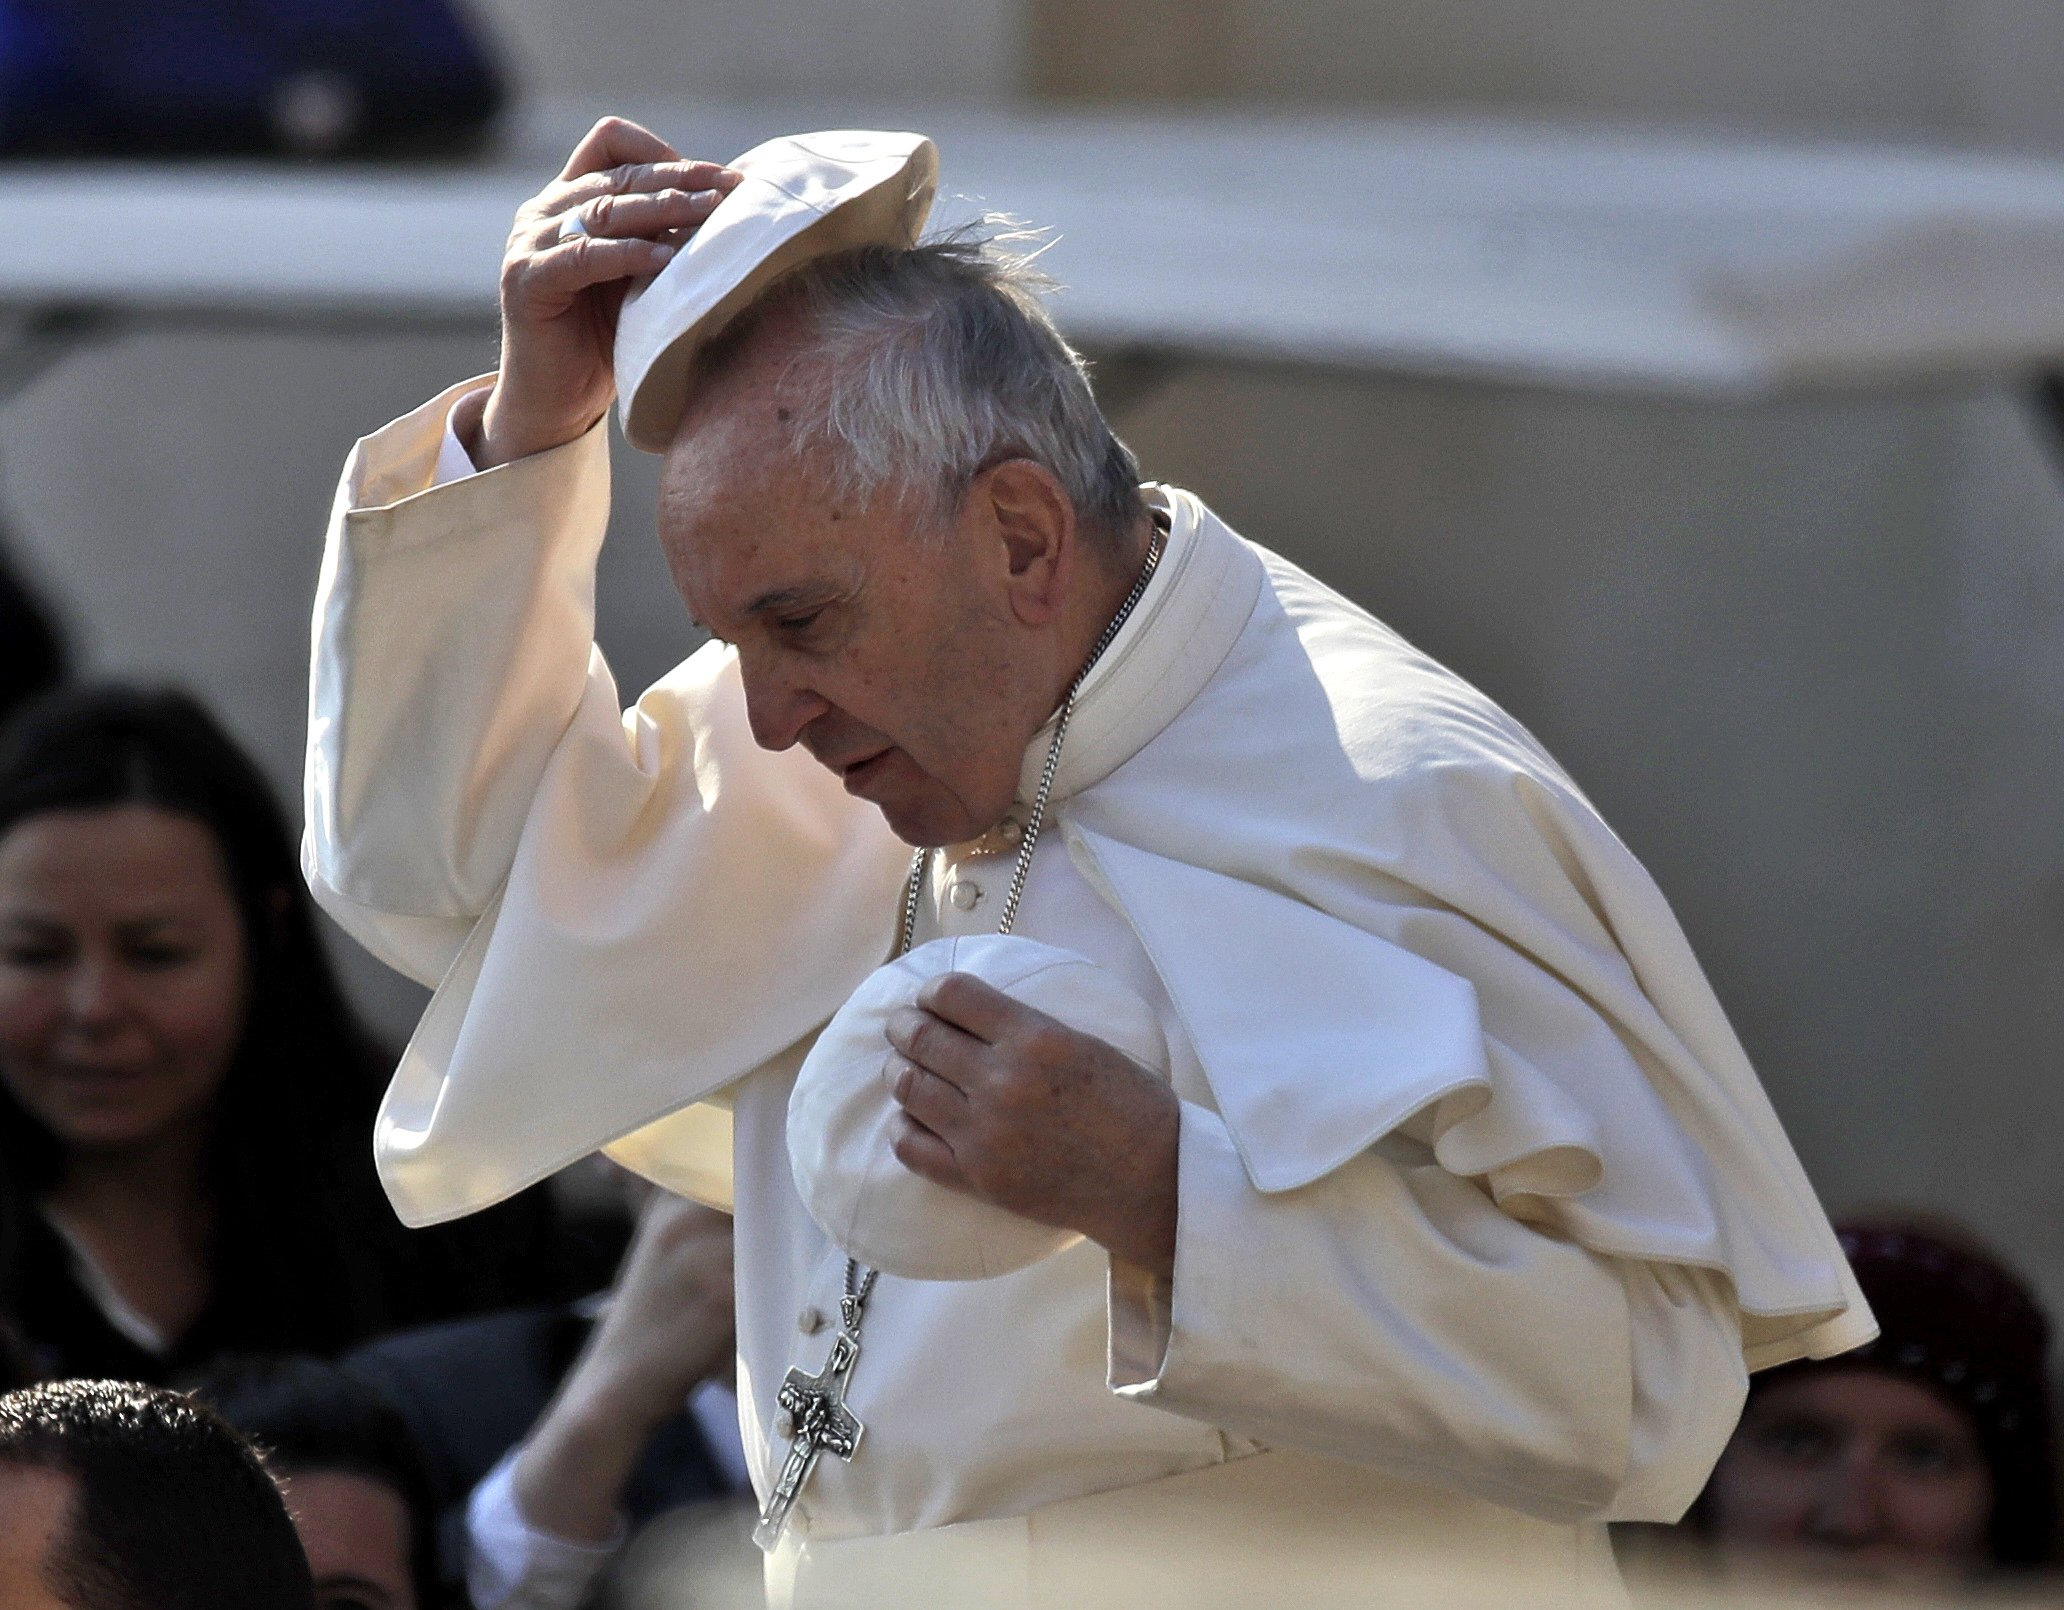 Pope to wash feet of inmates at mafia turncoat prison